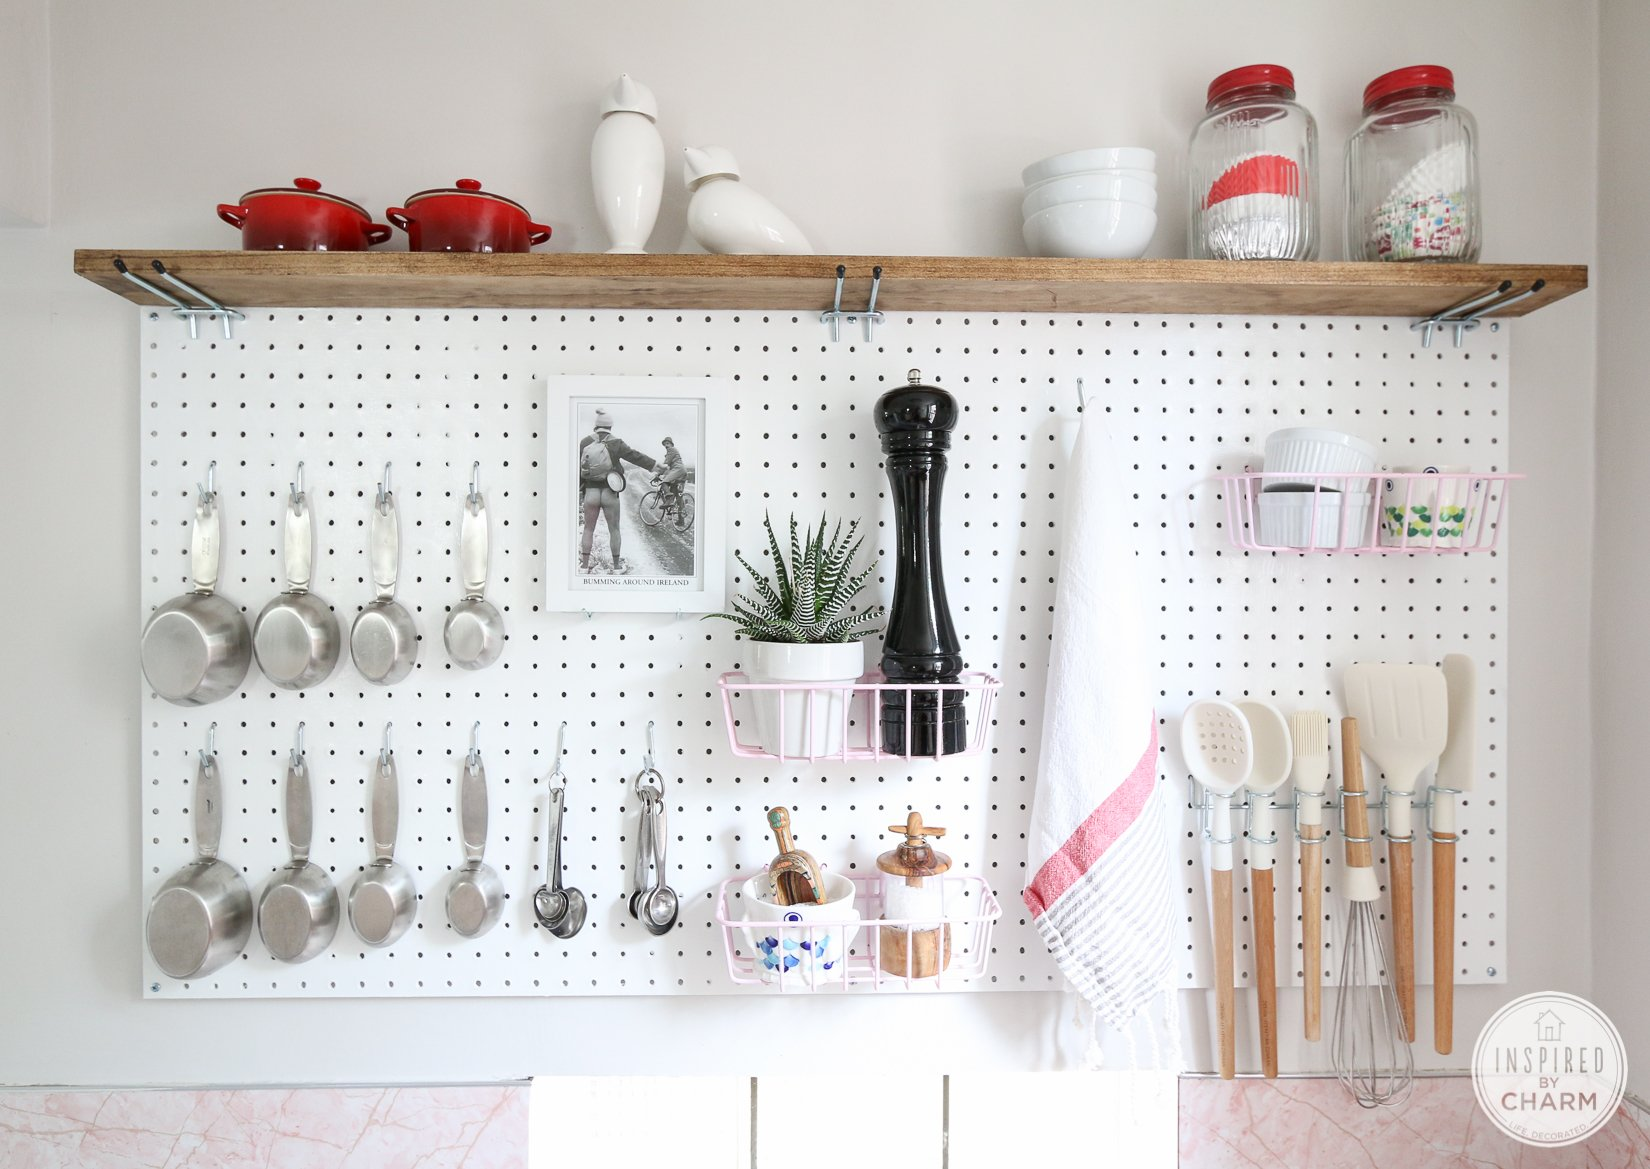 pegboard kitchen storage inspired by charm